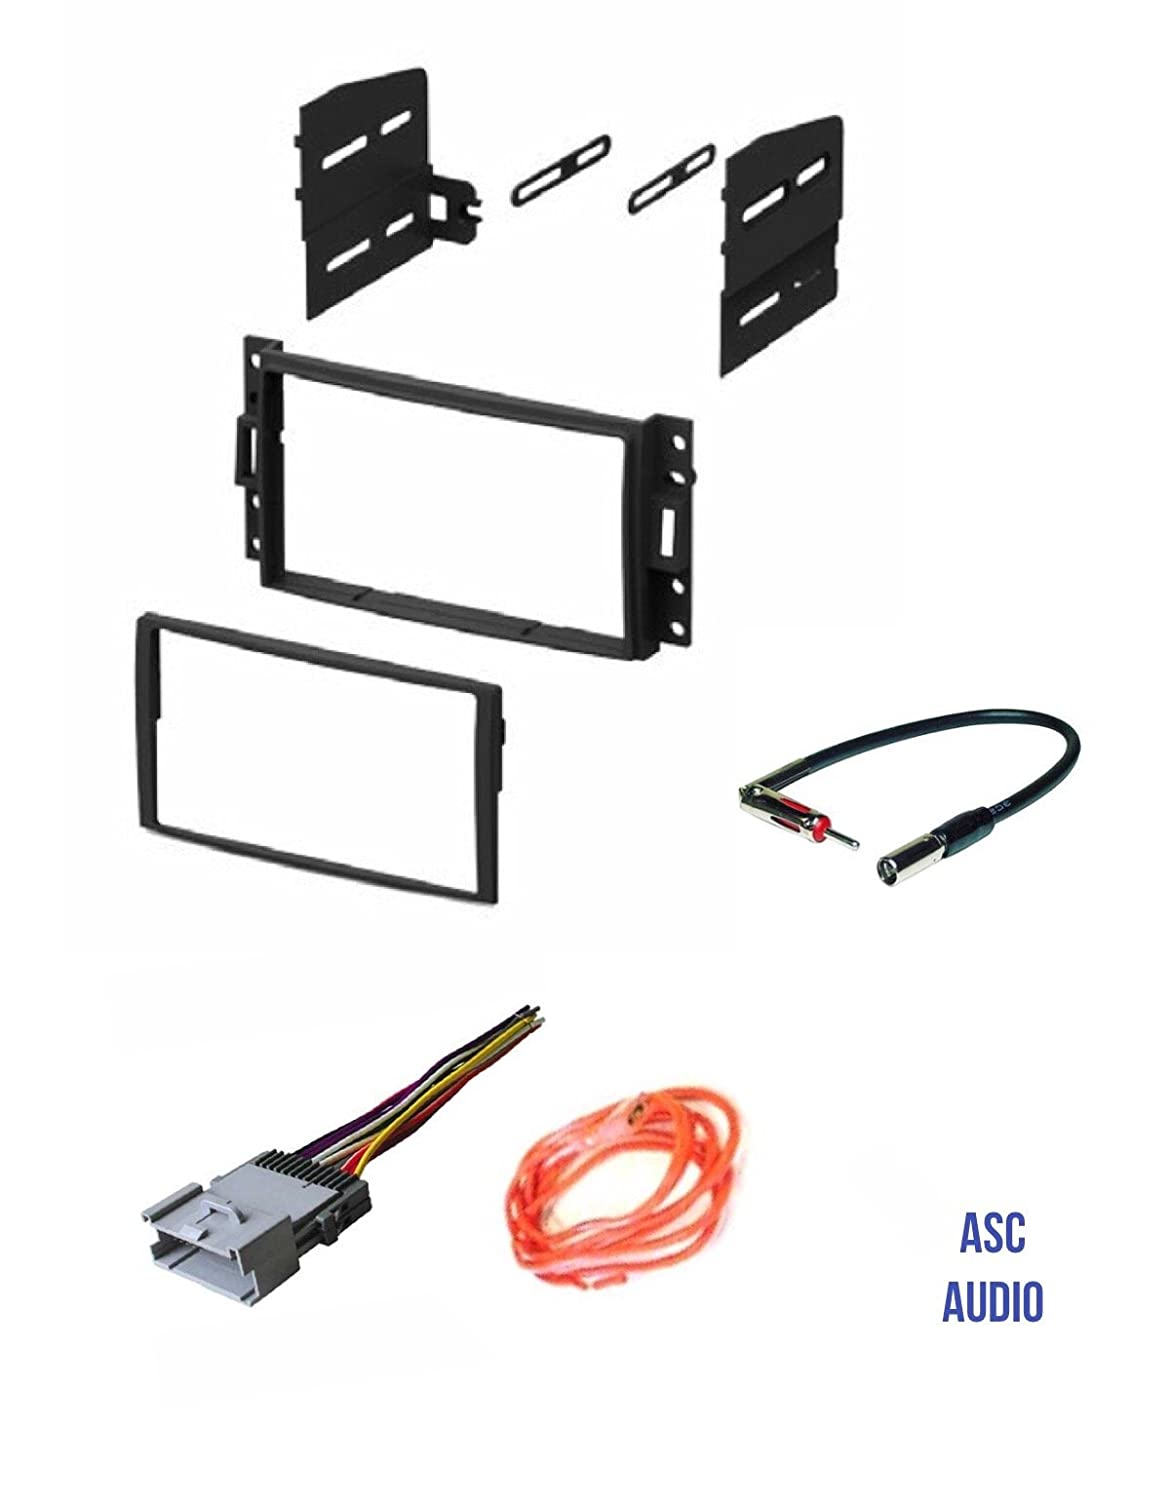 Asc Gm510 Double Din Car Radio Stereo Dash Kit Wire Harness And Tool Antenna Adapter For Some